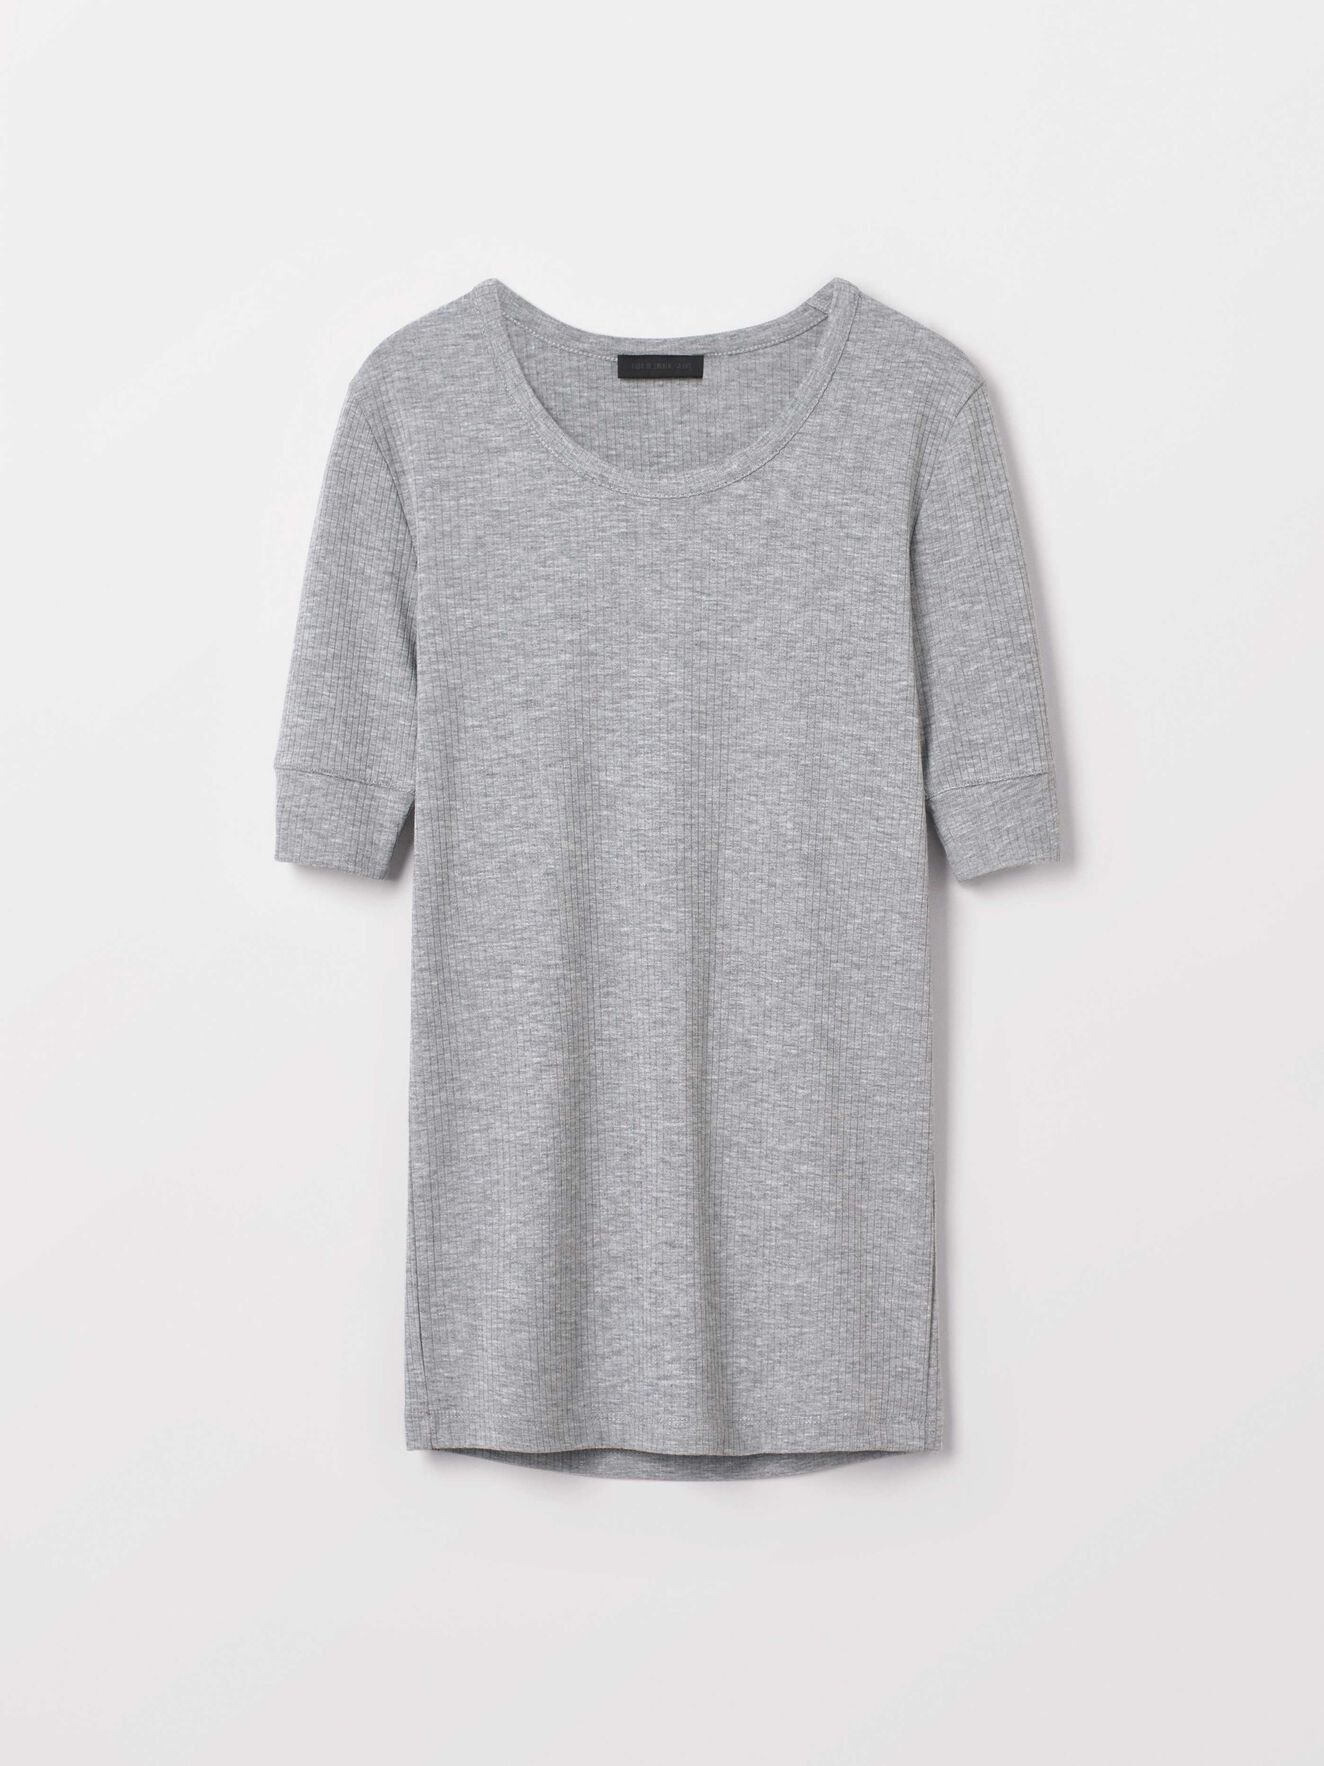 Violent T-Shirt in Med Grey Mel from Tiger of Sweden